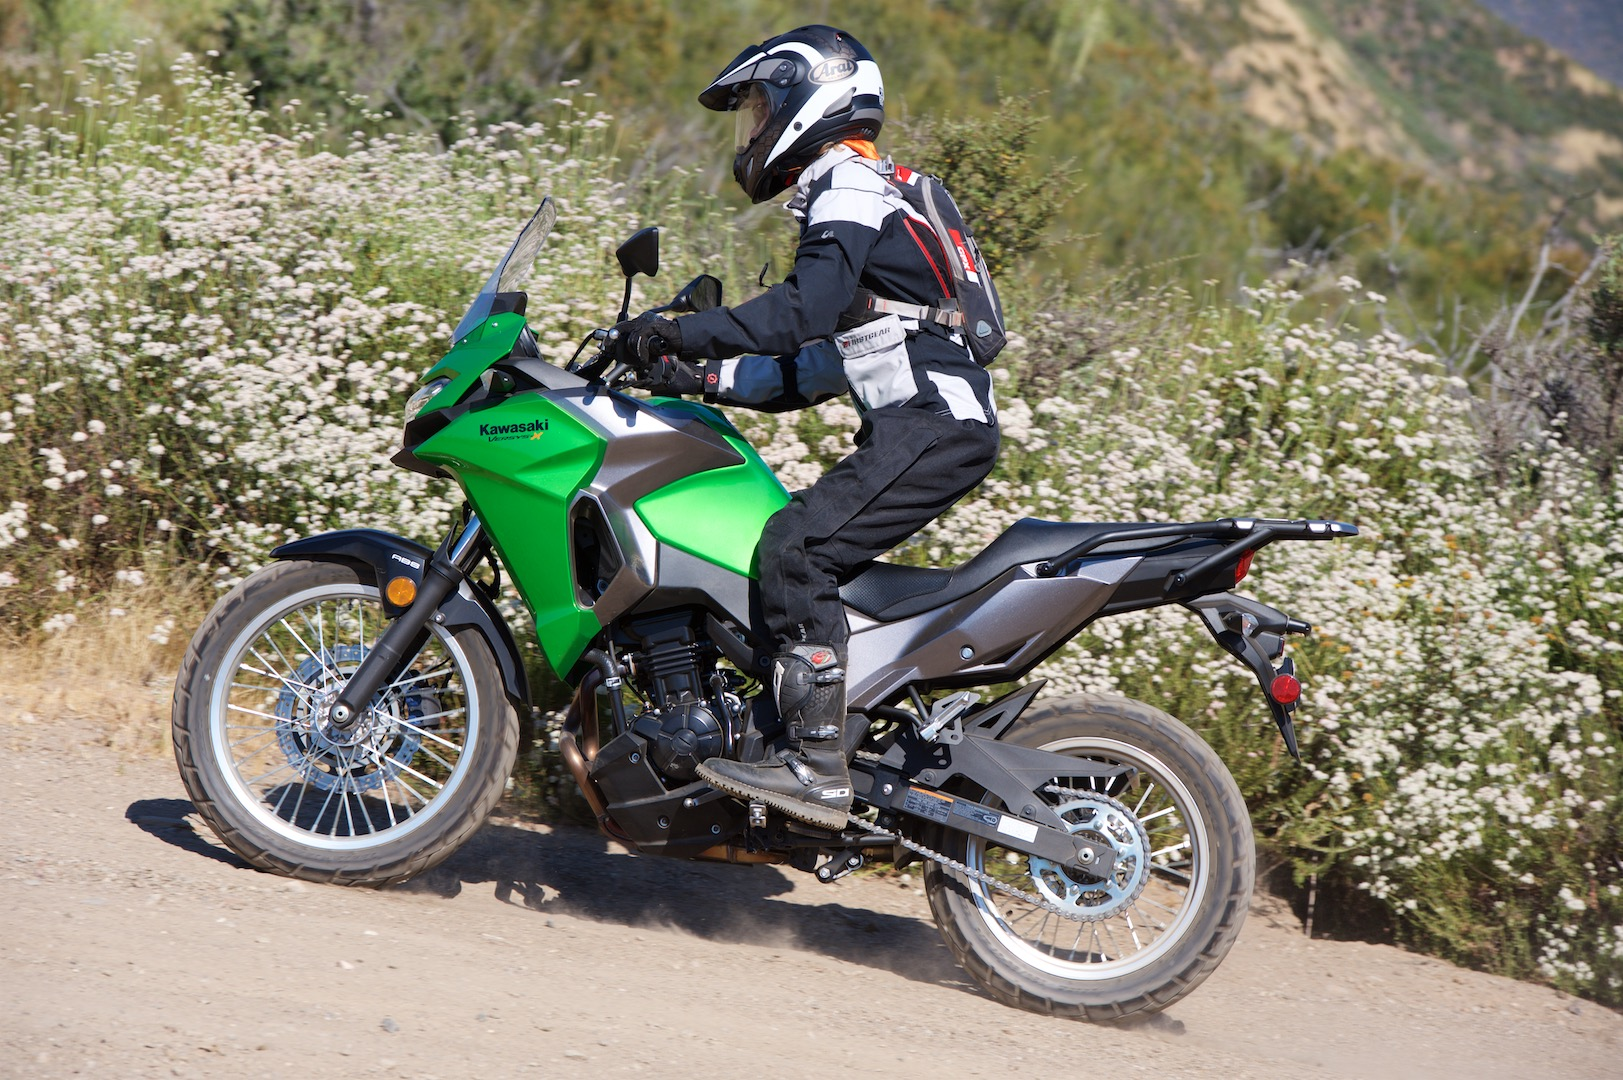 2017 Kawasaki Versys-X 300 Review | 13 Fast Facts